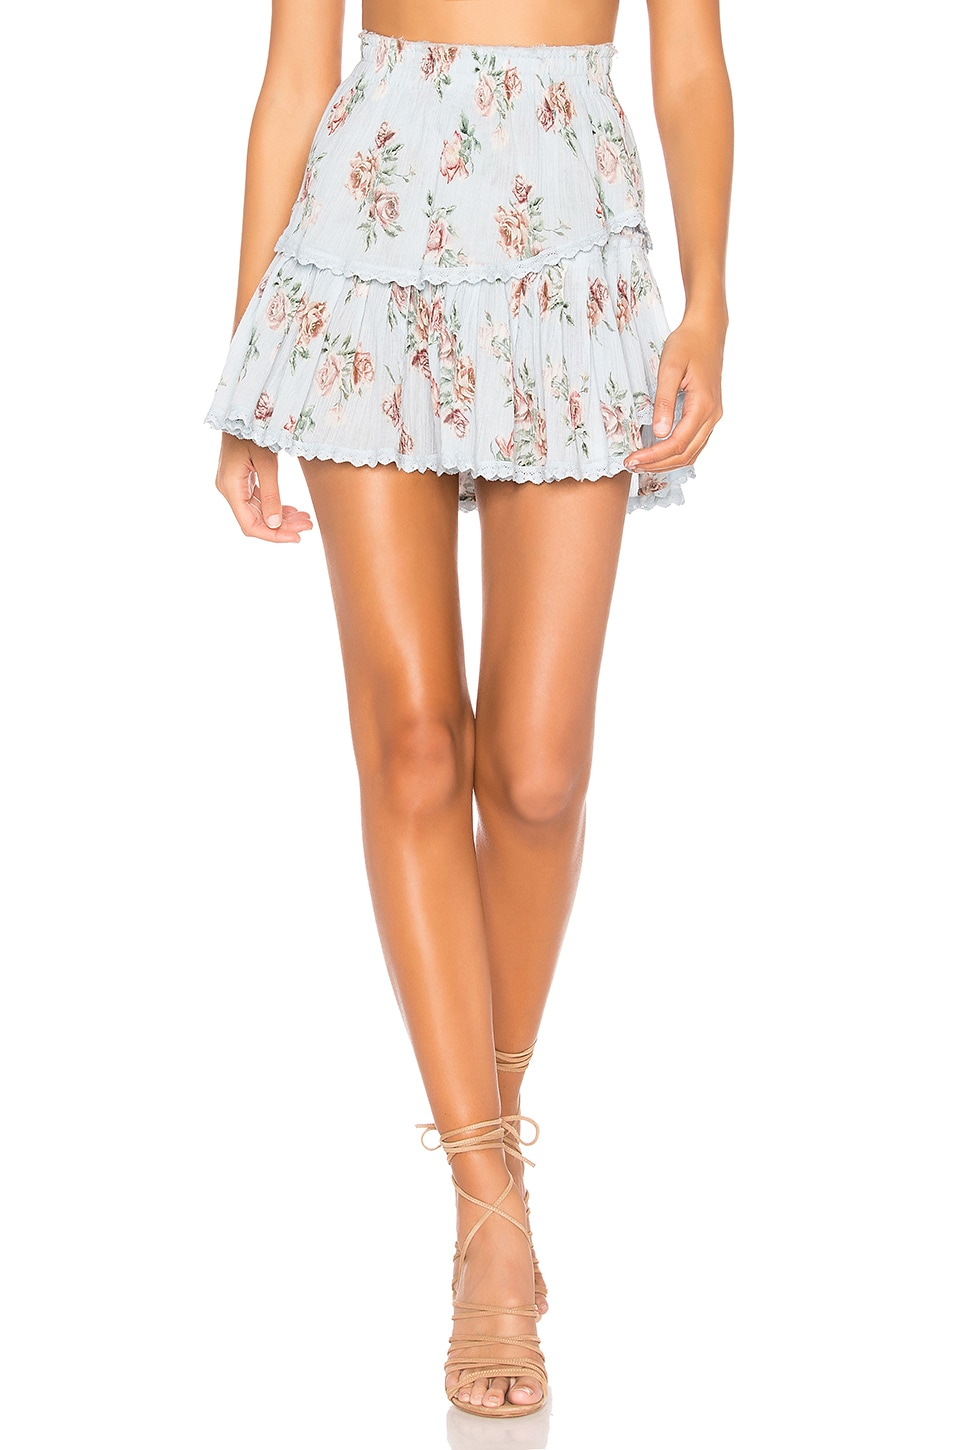 LoveShackFancy Ruffle Mini Skirt in Peri